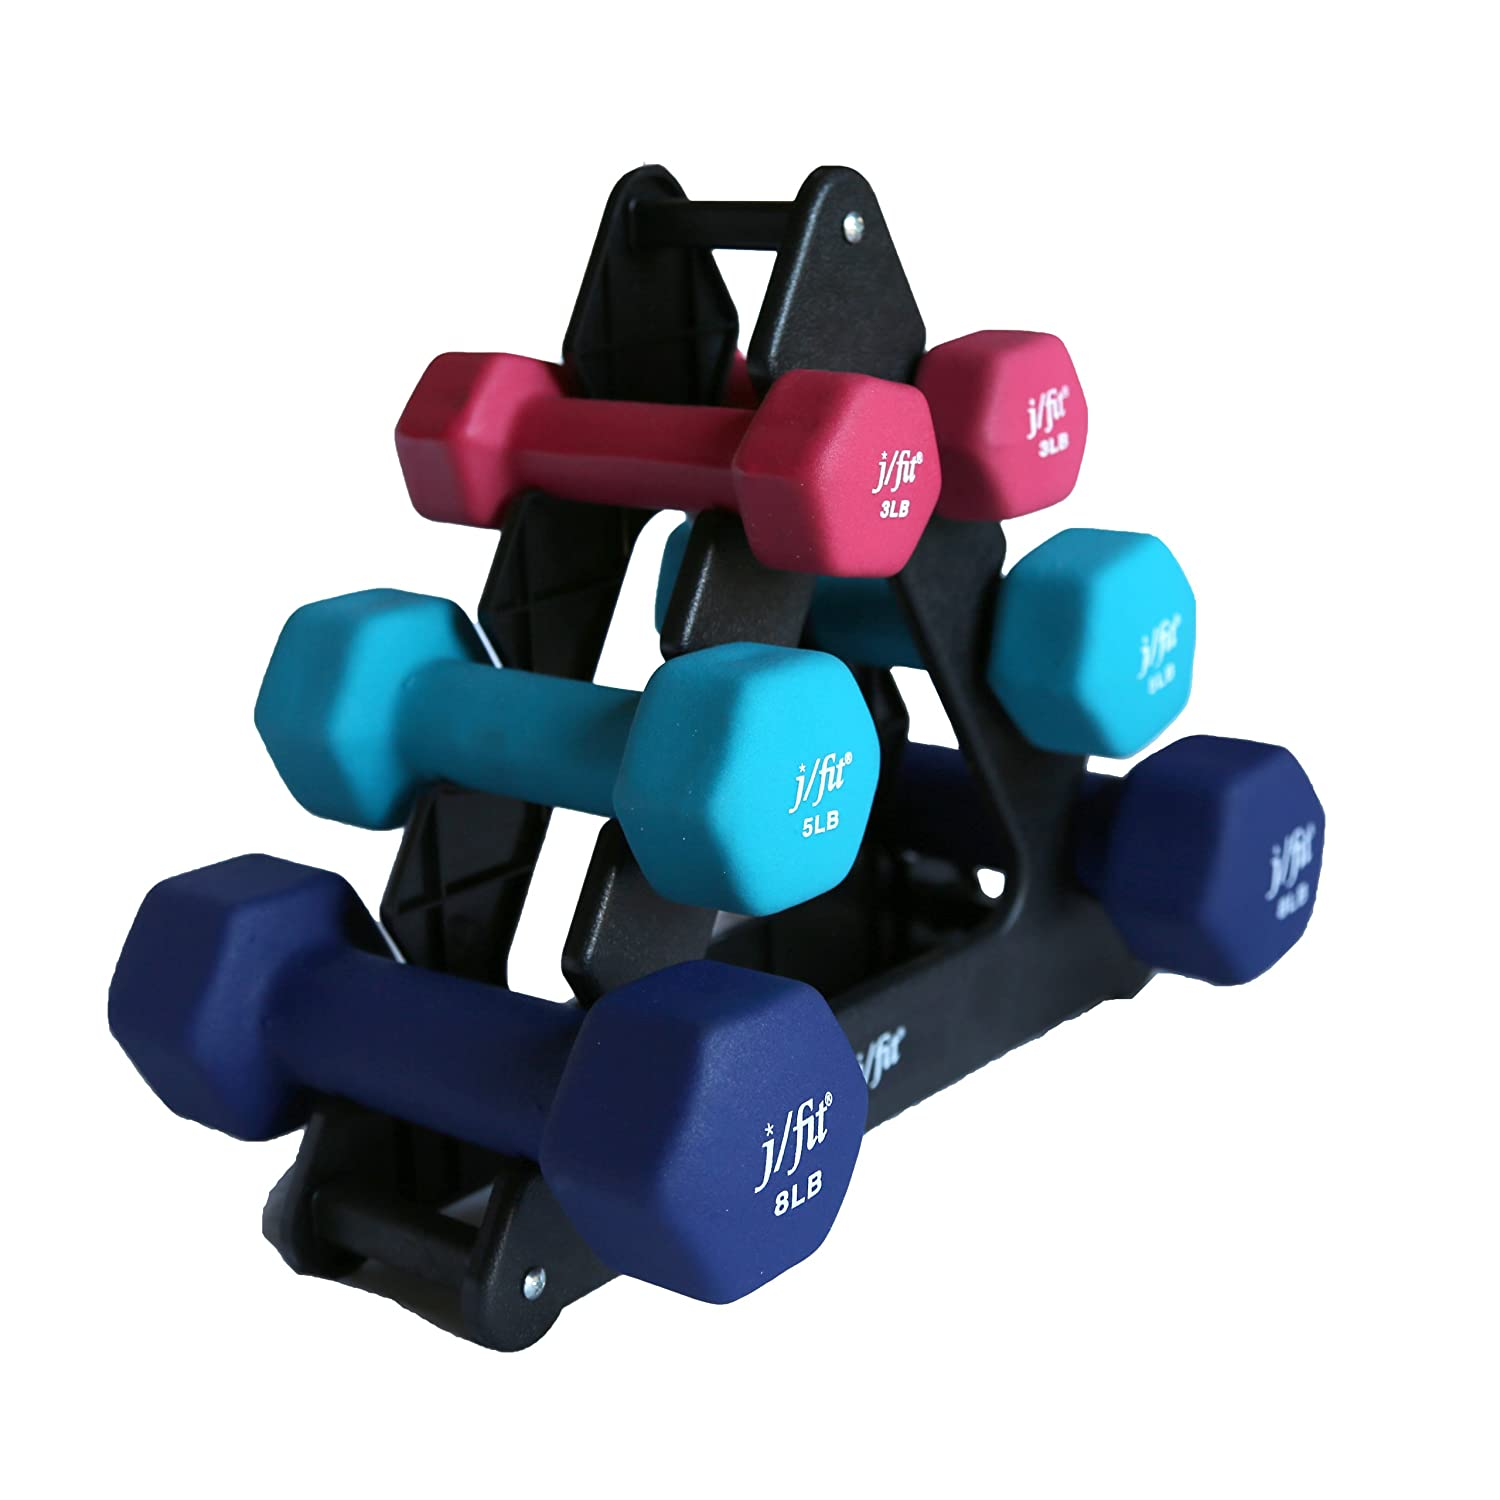 j/fit dumbbell set